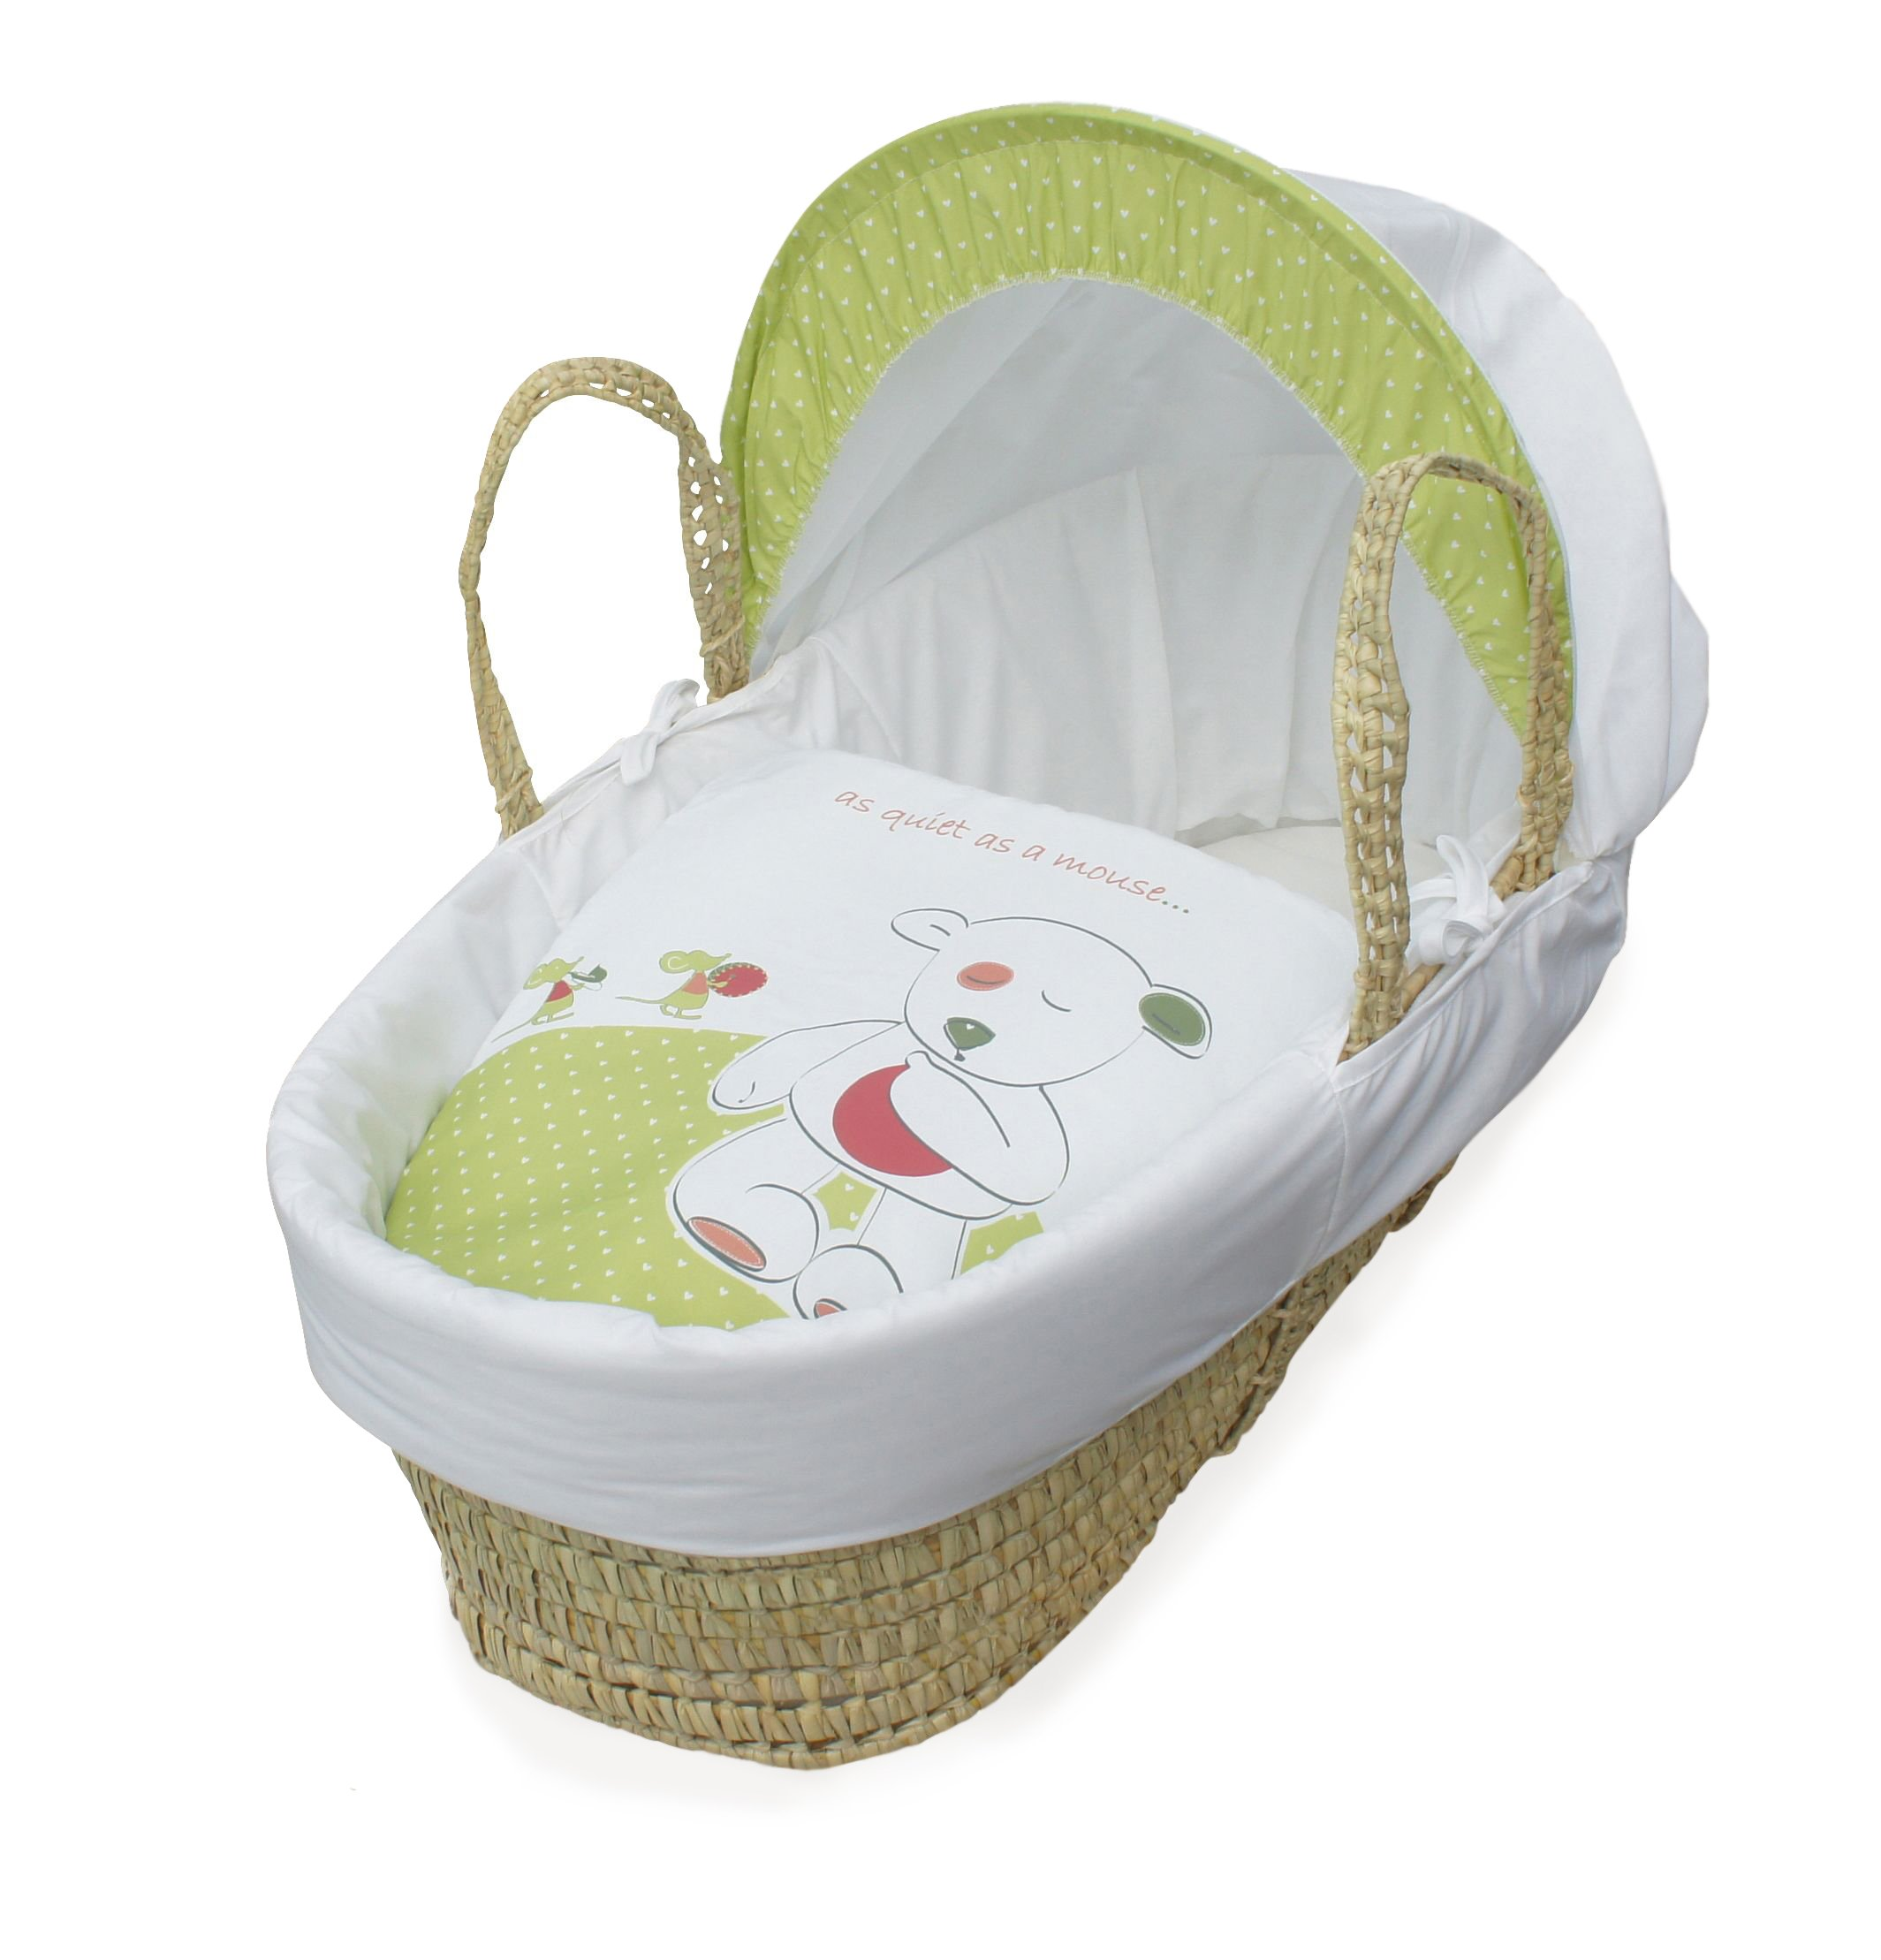 Quiet Little Mouse On Palm Moses Basket & Deluxe White Rocking Stand Elegant Baby Suitable from newborn for up to 9kg, this Moses Basket uses Easy-care Poly Cotton with a soft padding surround Suitable from newborn to 9 months It also includes a comfortable mattress and an adjustable hood perfect to create a cosy sleeping space for your precious little one 2